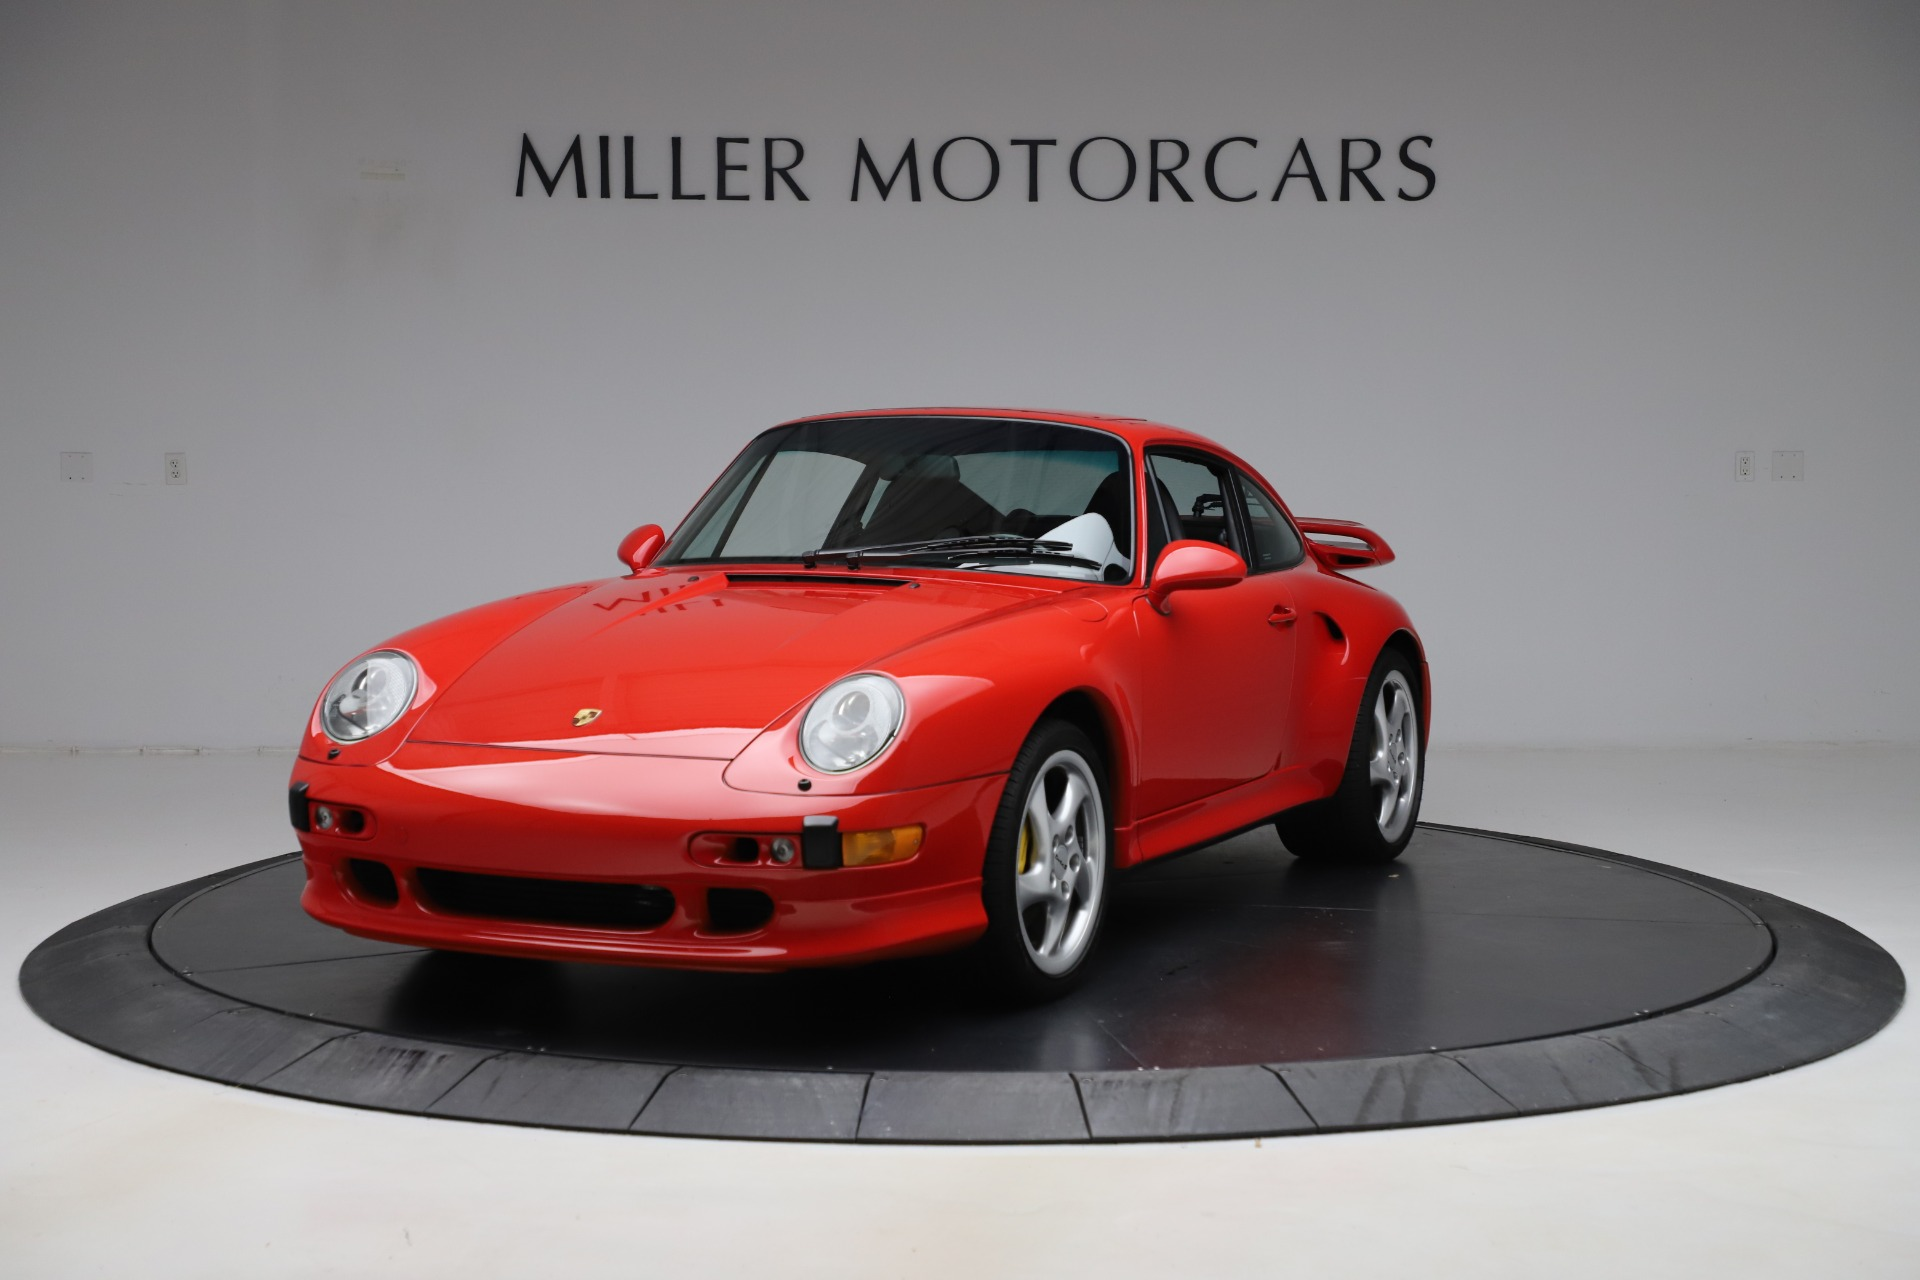 Used 1997 Porsche 911 Turbo S for sale $429,900 at Aston Martin of Greenwich in Greenwich CT 06830 1